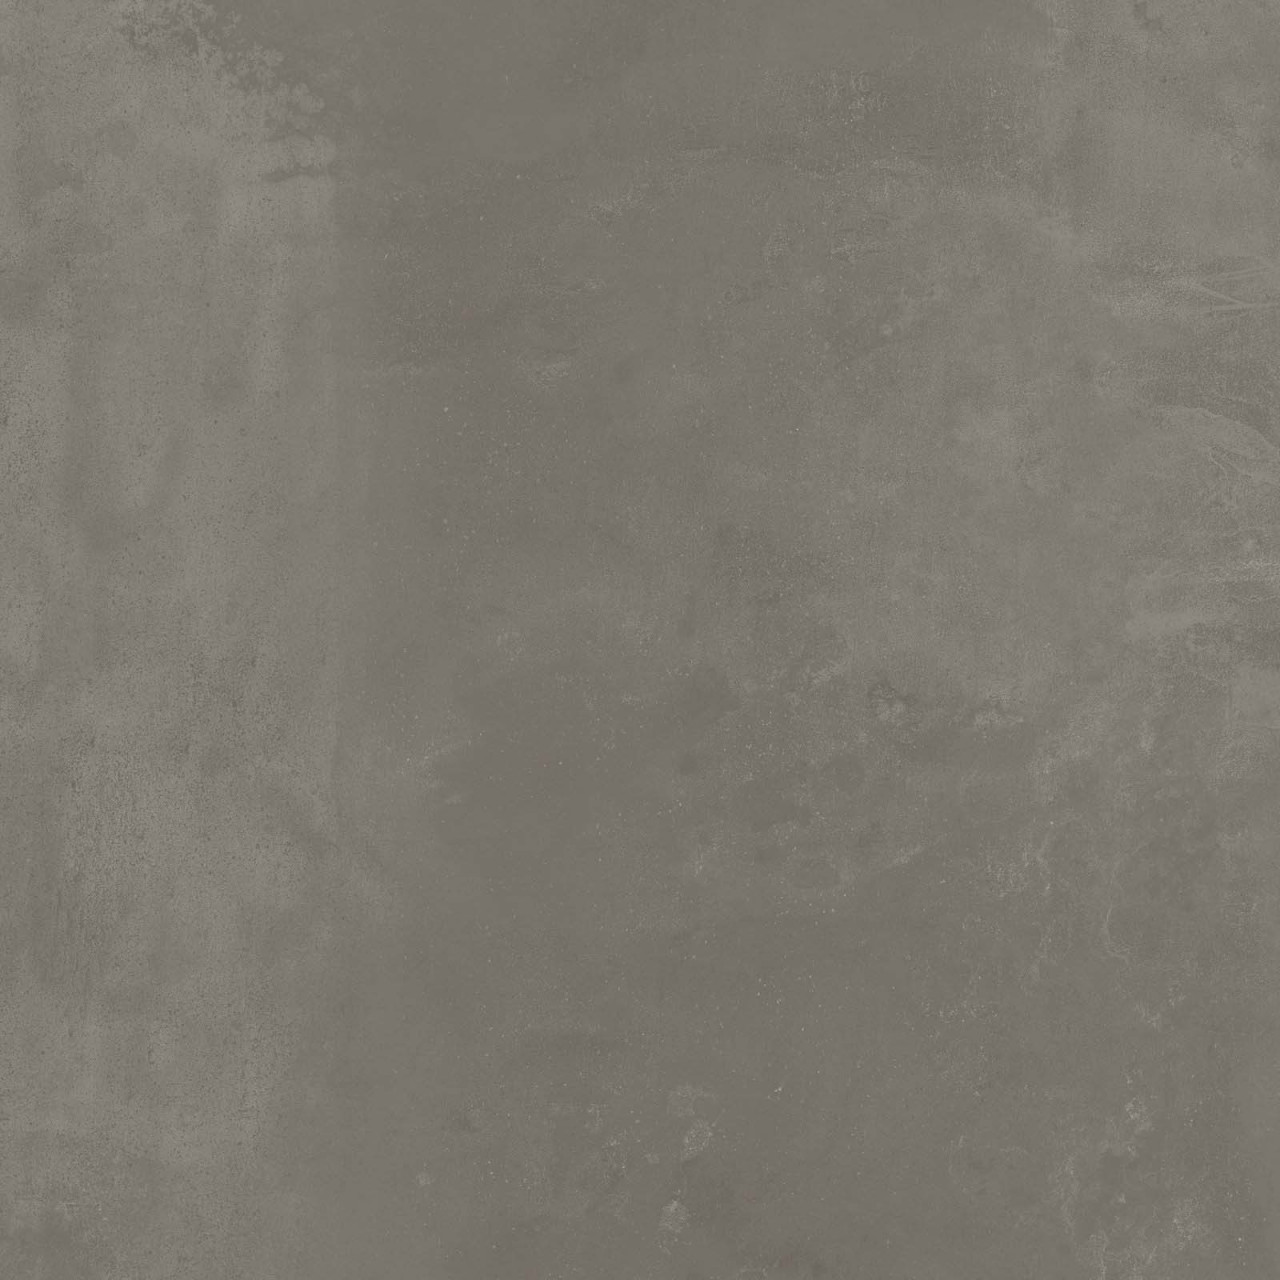 ABK LAB325 Base Taupe Grip 60 x 60 cm Outdoor